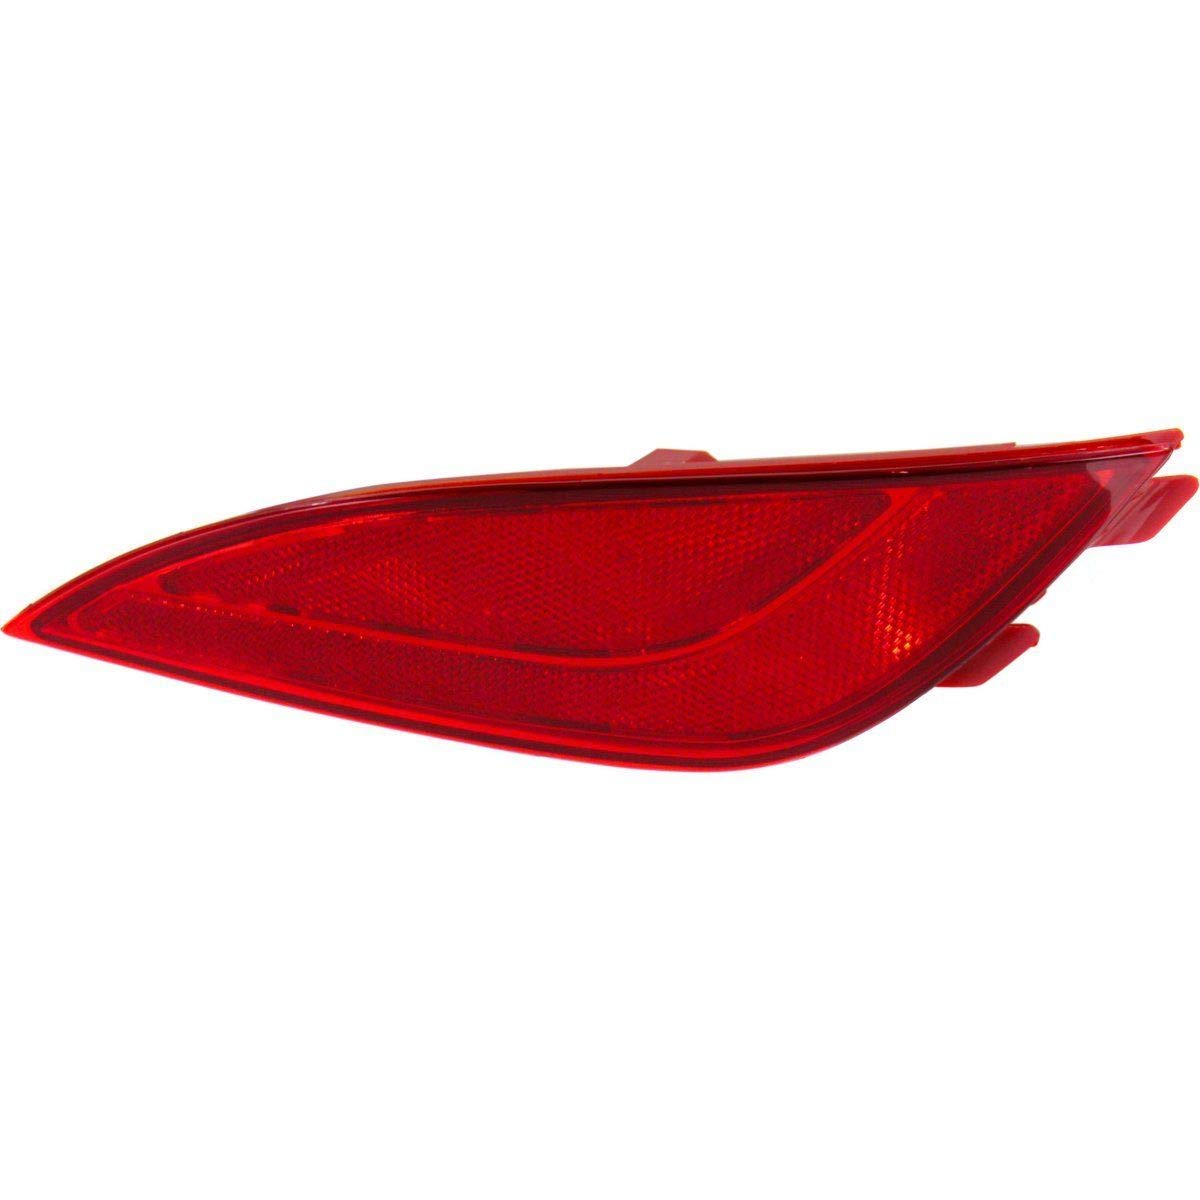 New Rear Right Passenger Side Bumper Reflector For 2010-2015 Hyundai Tucson HY1185108 924062S100